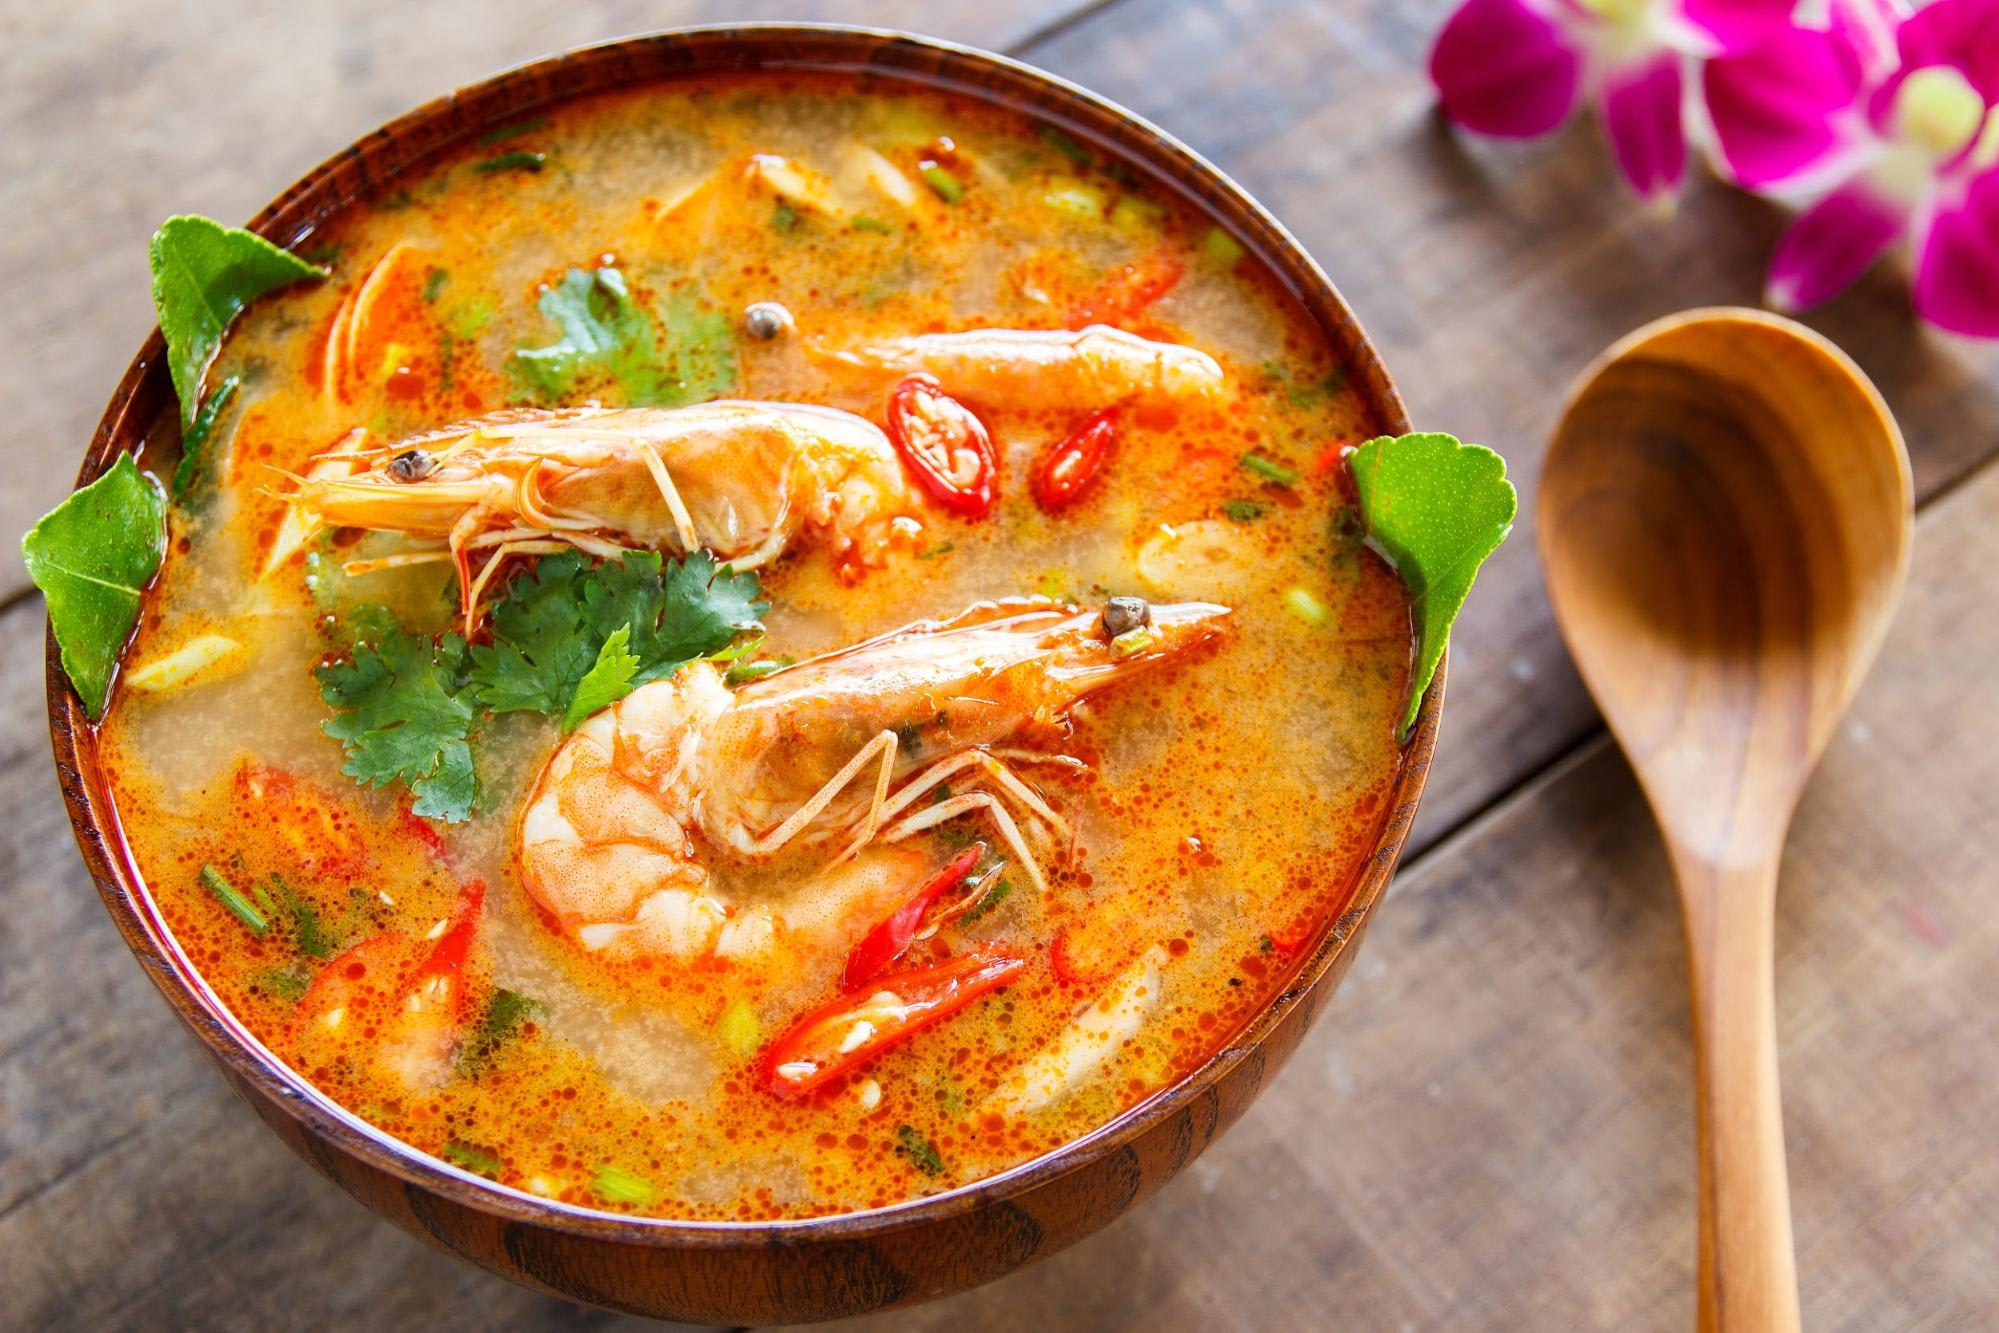 Tom yum soup at Bangkok Cooking Academy